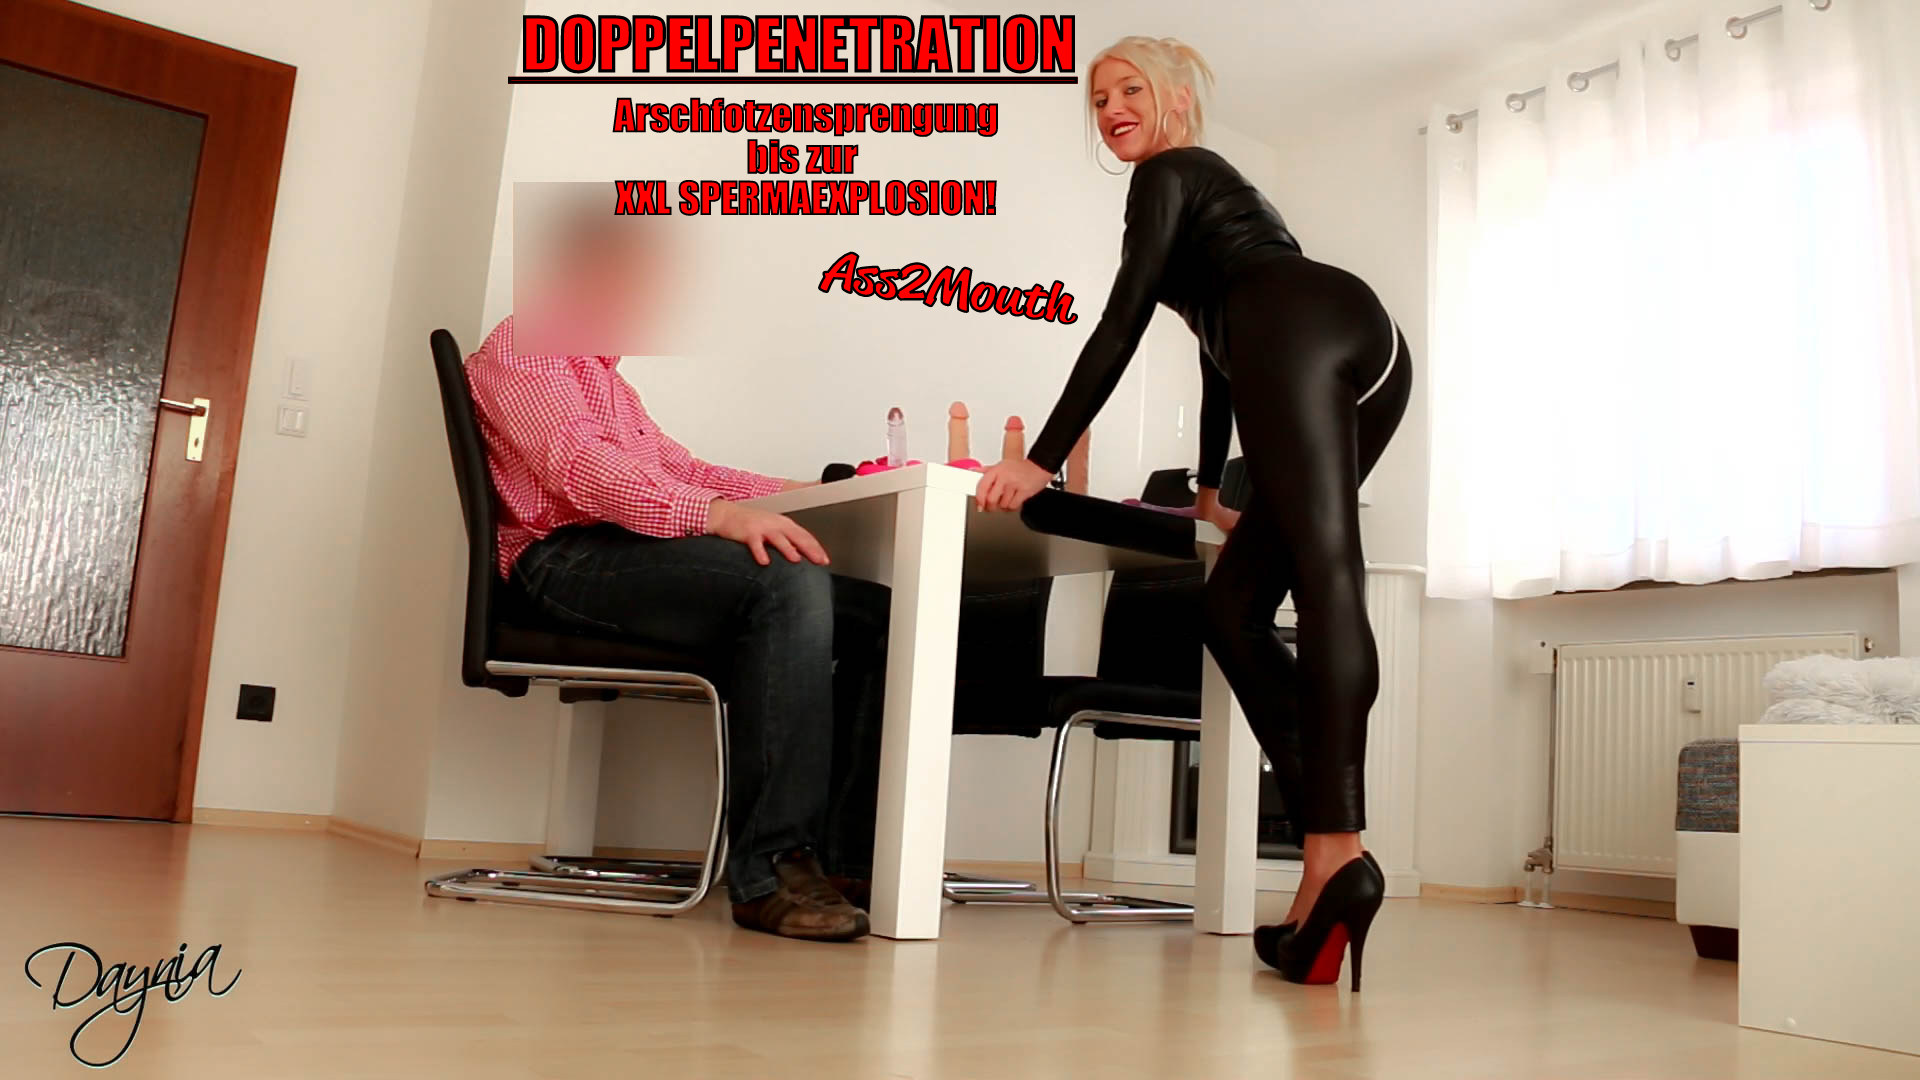 DP! Analsprengung bis zum MEGA CUMSHOT! Ass2Mouth